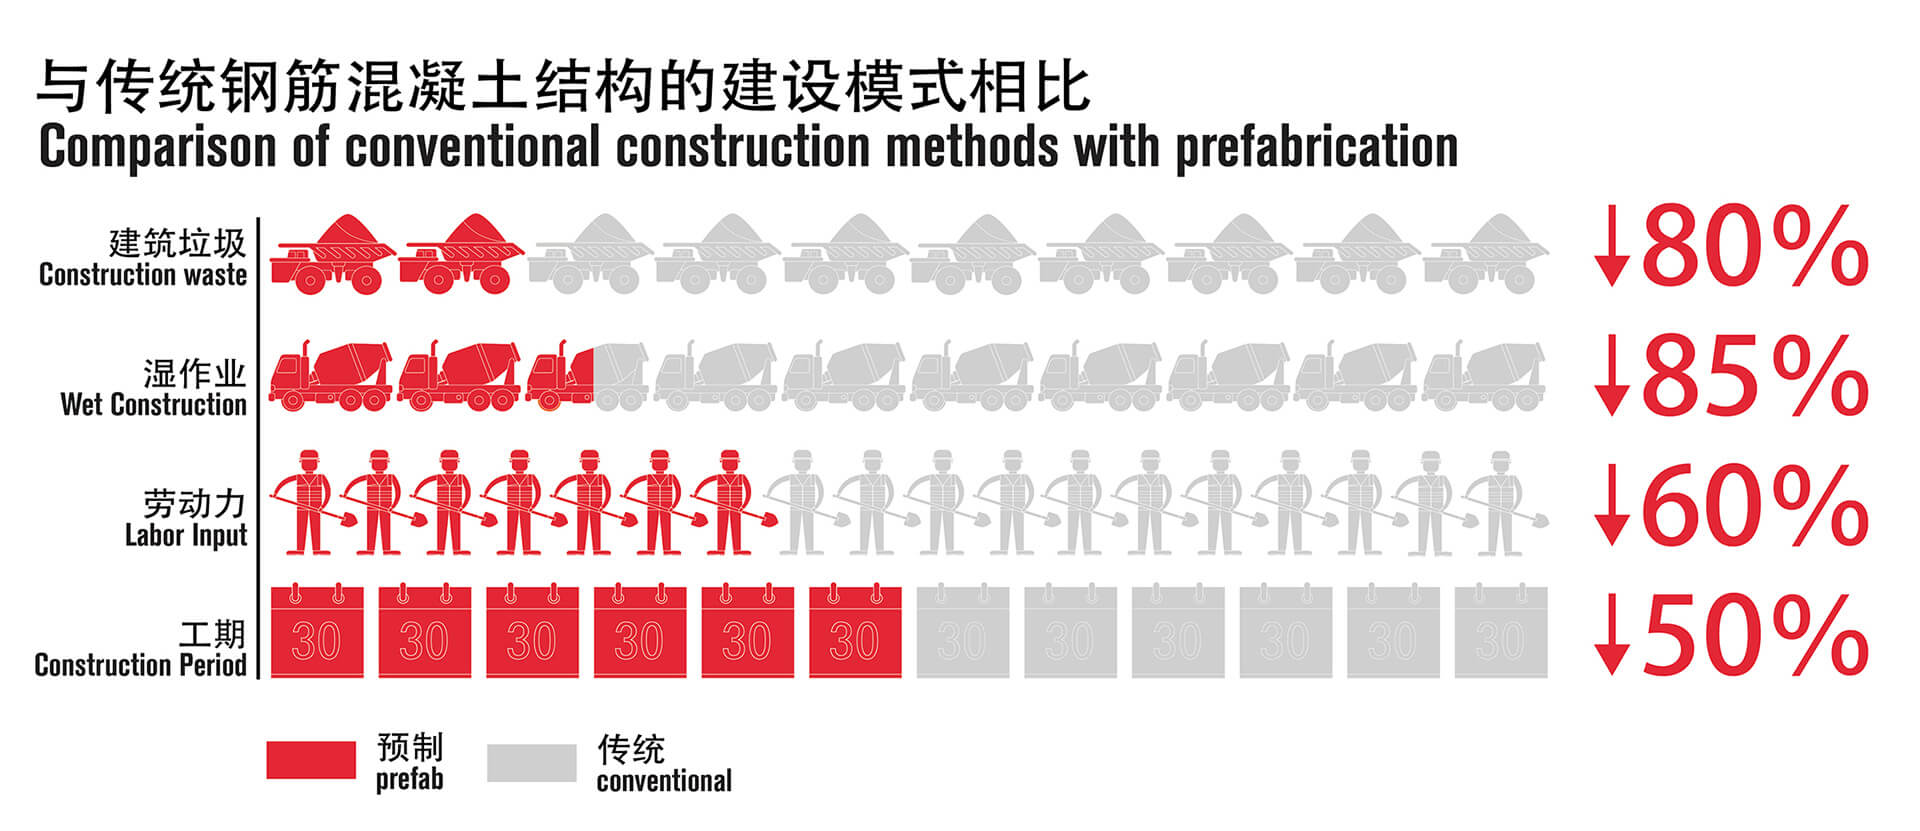 Comparison of conventional construction methods with fabrication | Crossboundaries | Shenzhen, China | STIRworld